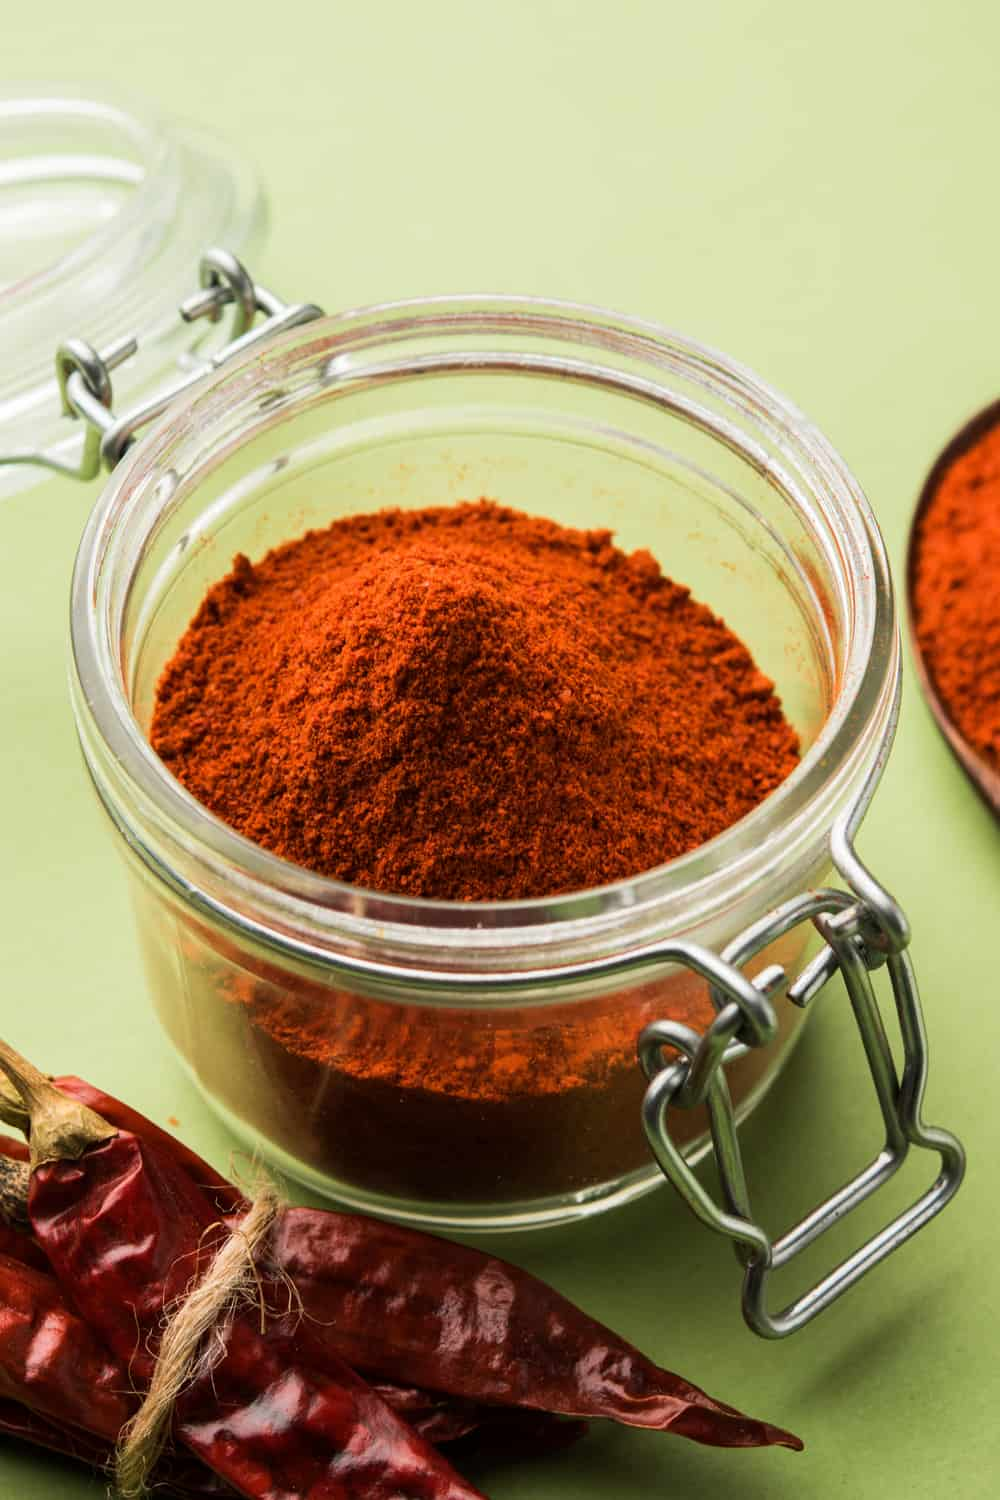 How Long Does Chili Powder Last